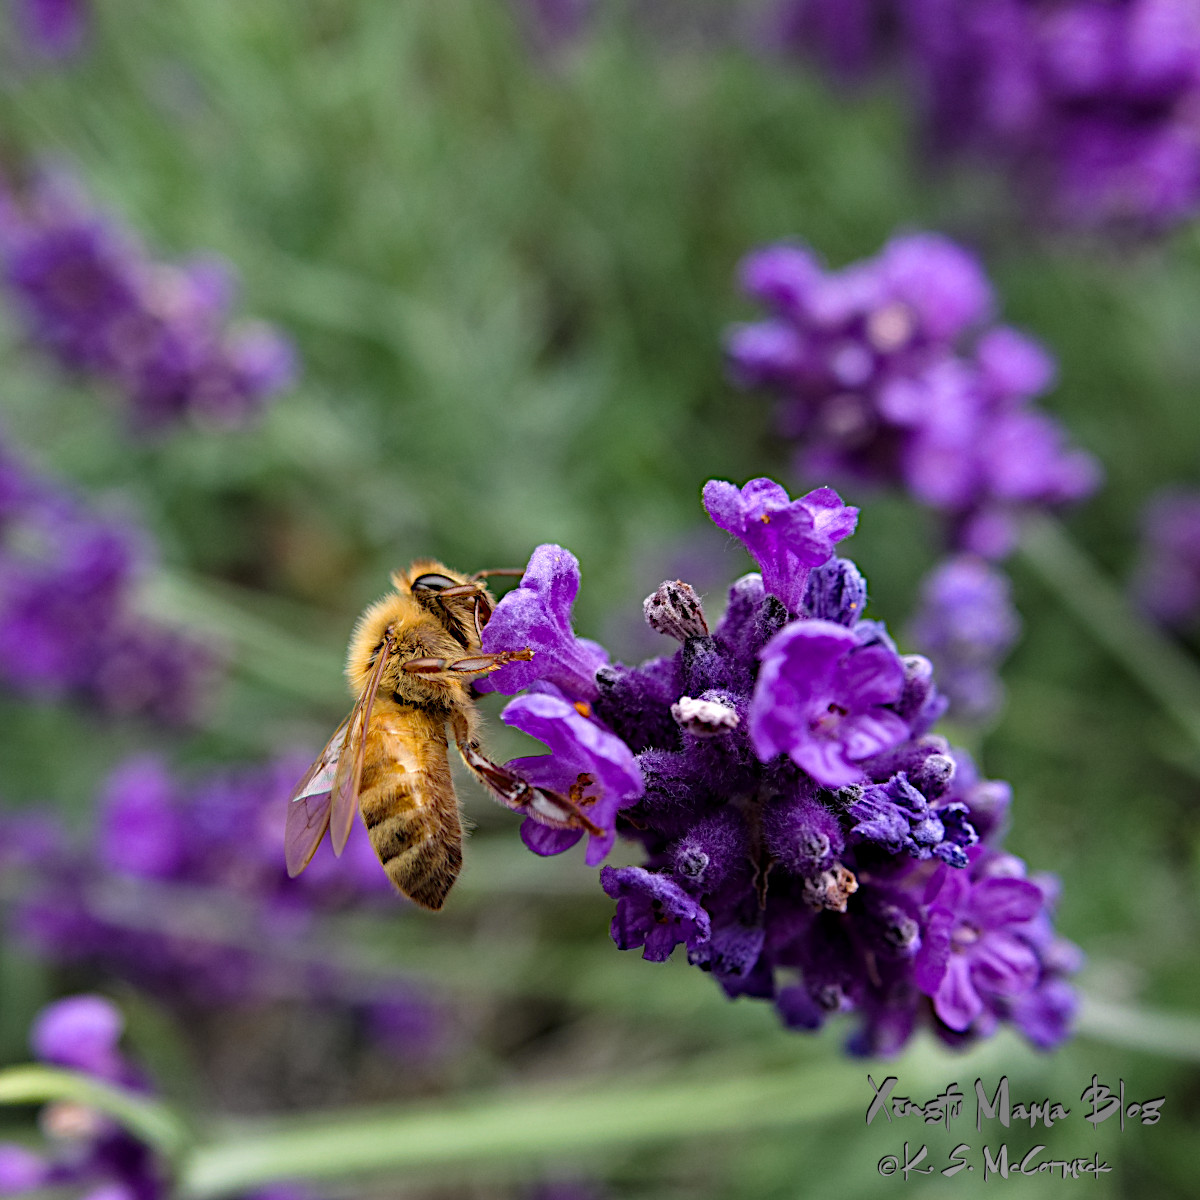 Close-up of a honey bee on a lavender flower.